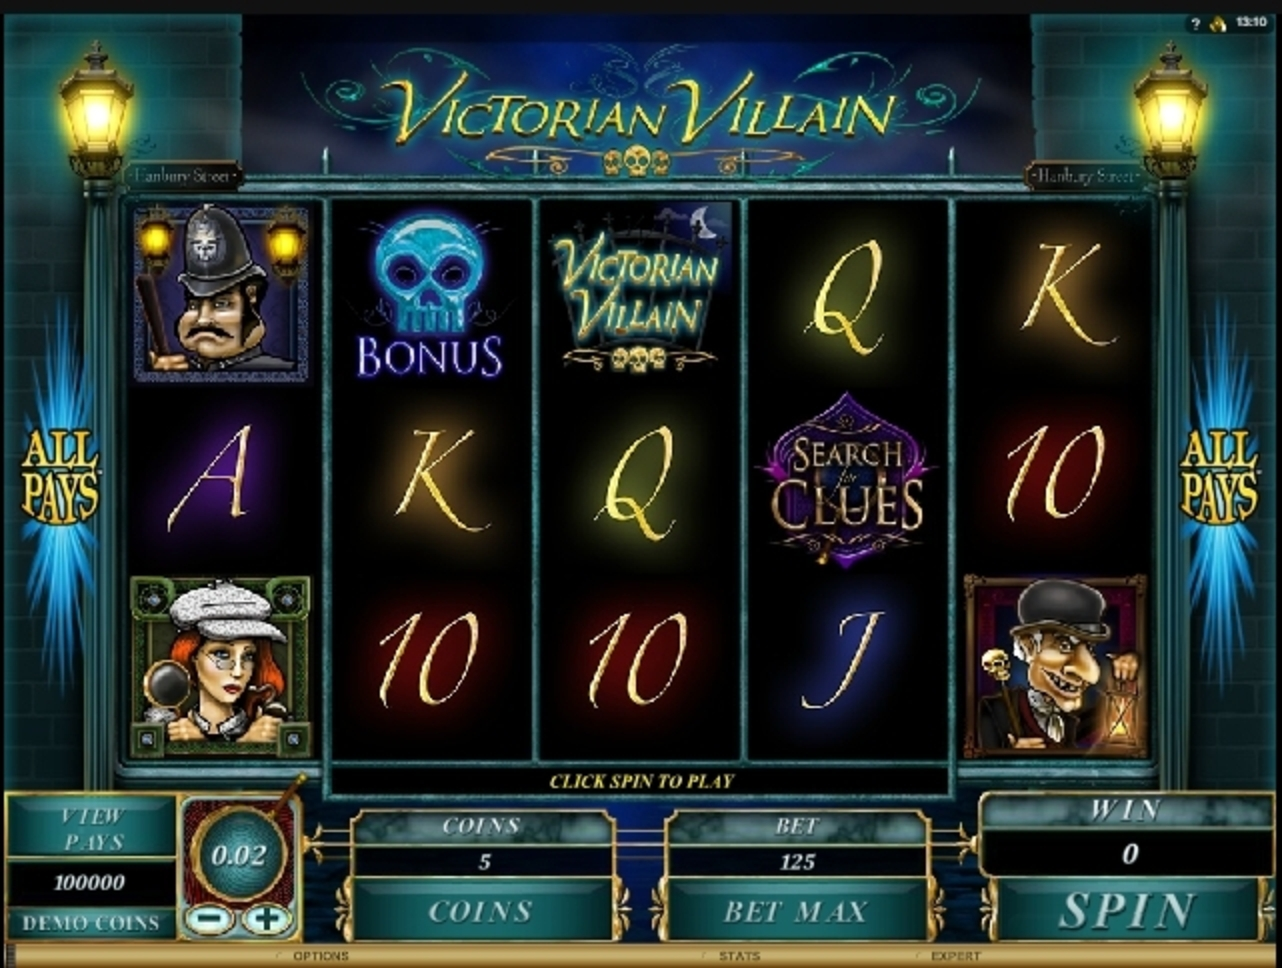 Reels in Victorian Villain Slot Game by Microgaming